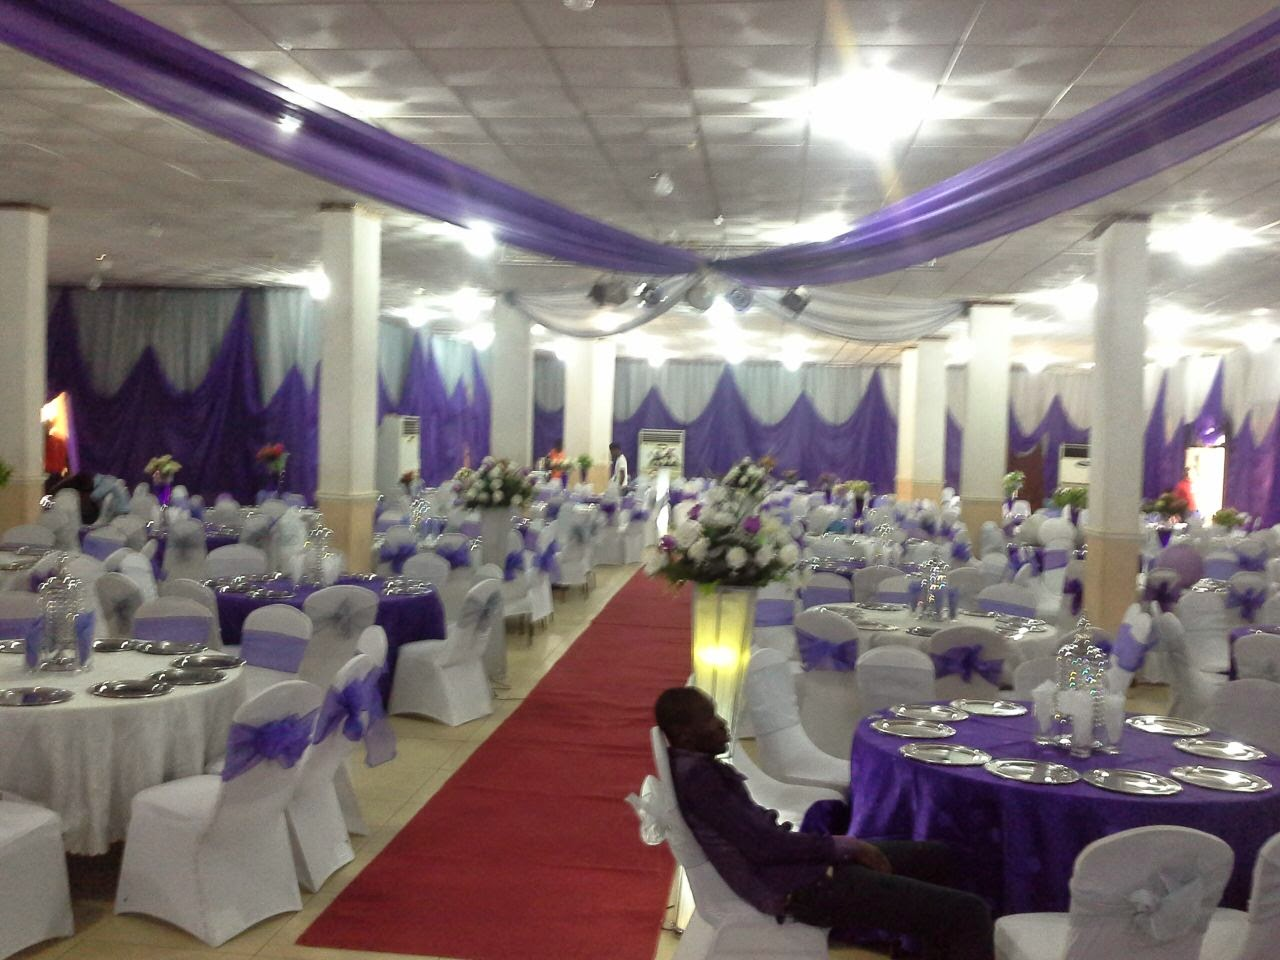 Welcome to aaa events design training training training in event decoration for Event planning and design courses